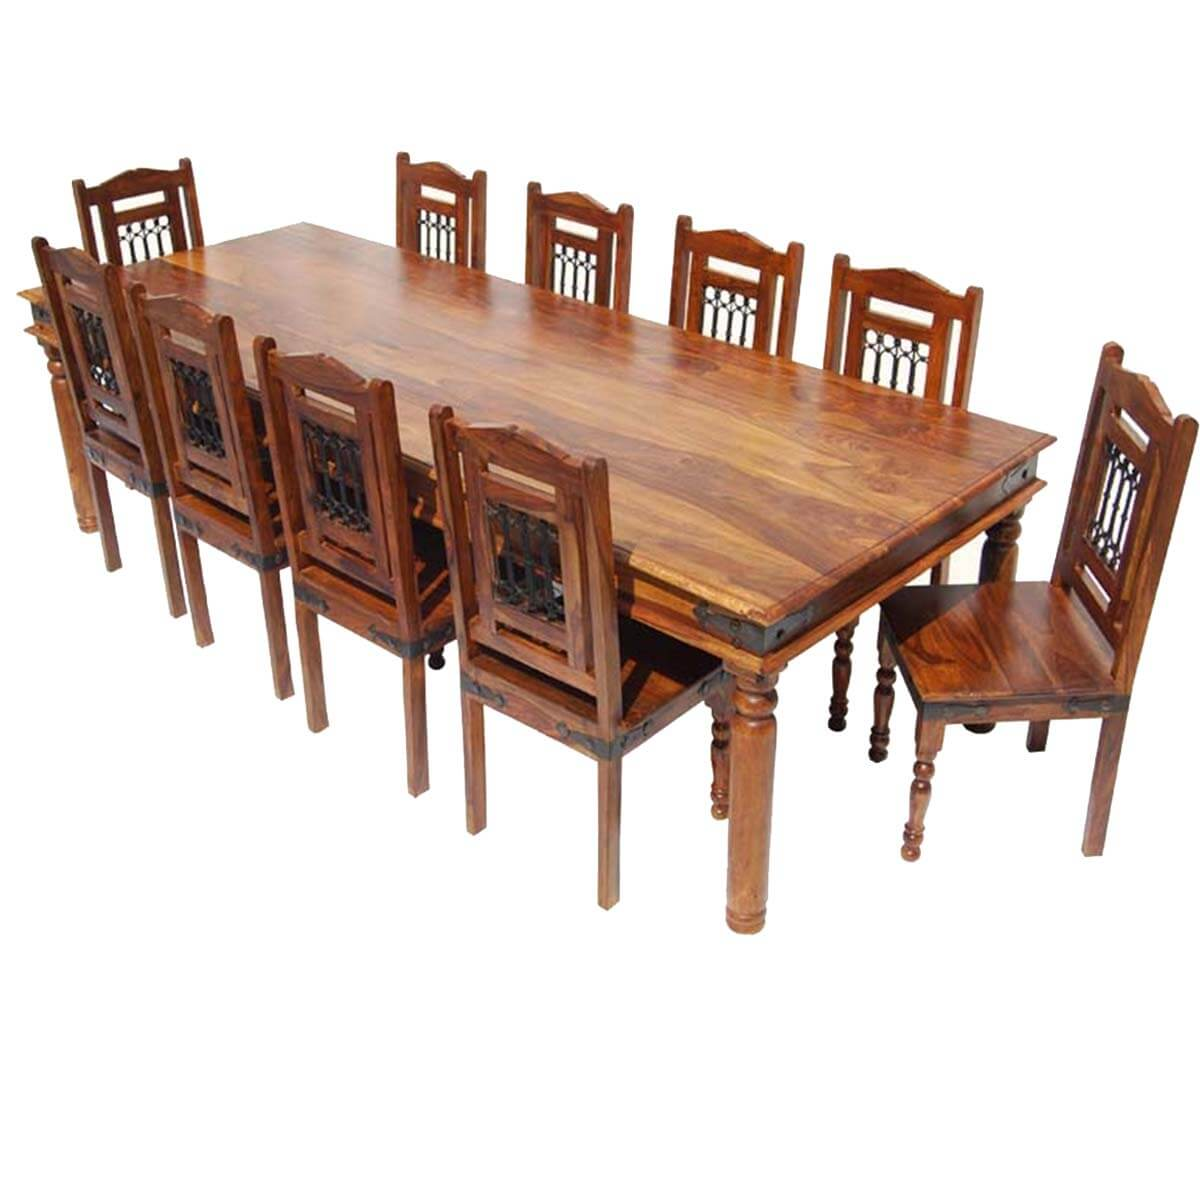 Rustic Wooden Dining Room Table ~ Solid wood large rustic dining room table chair sideboard set